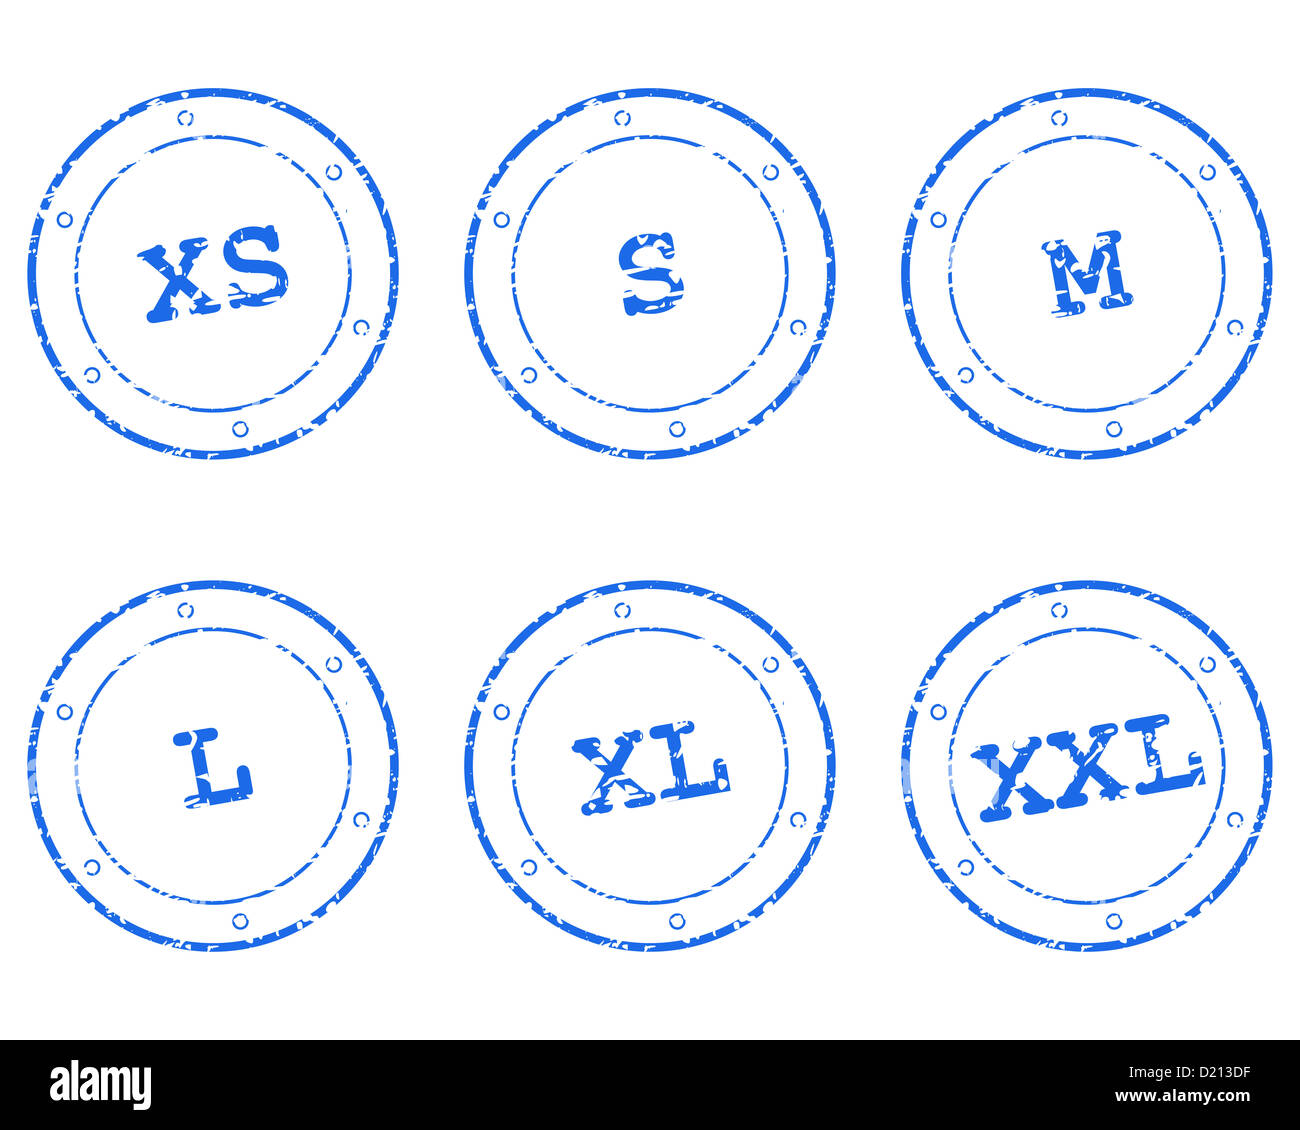 Clothing size stamps Stock Photo